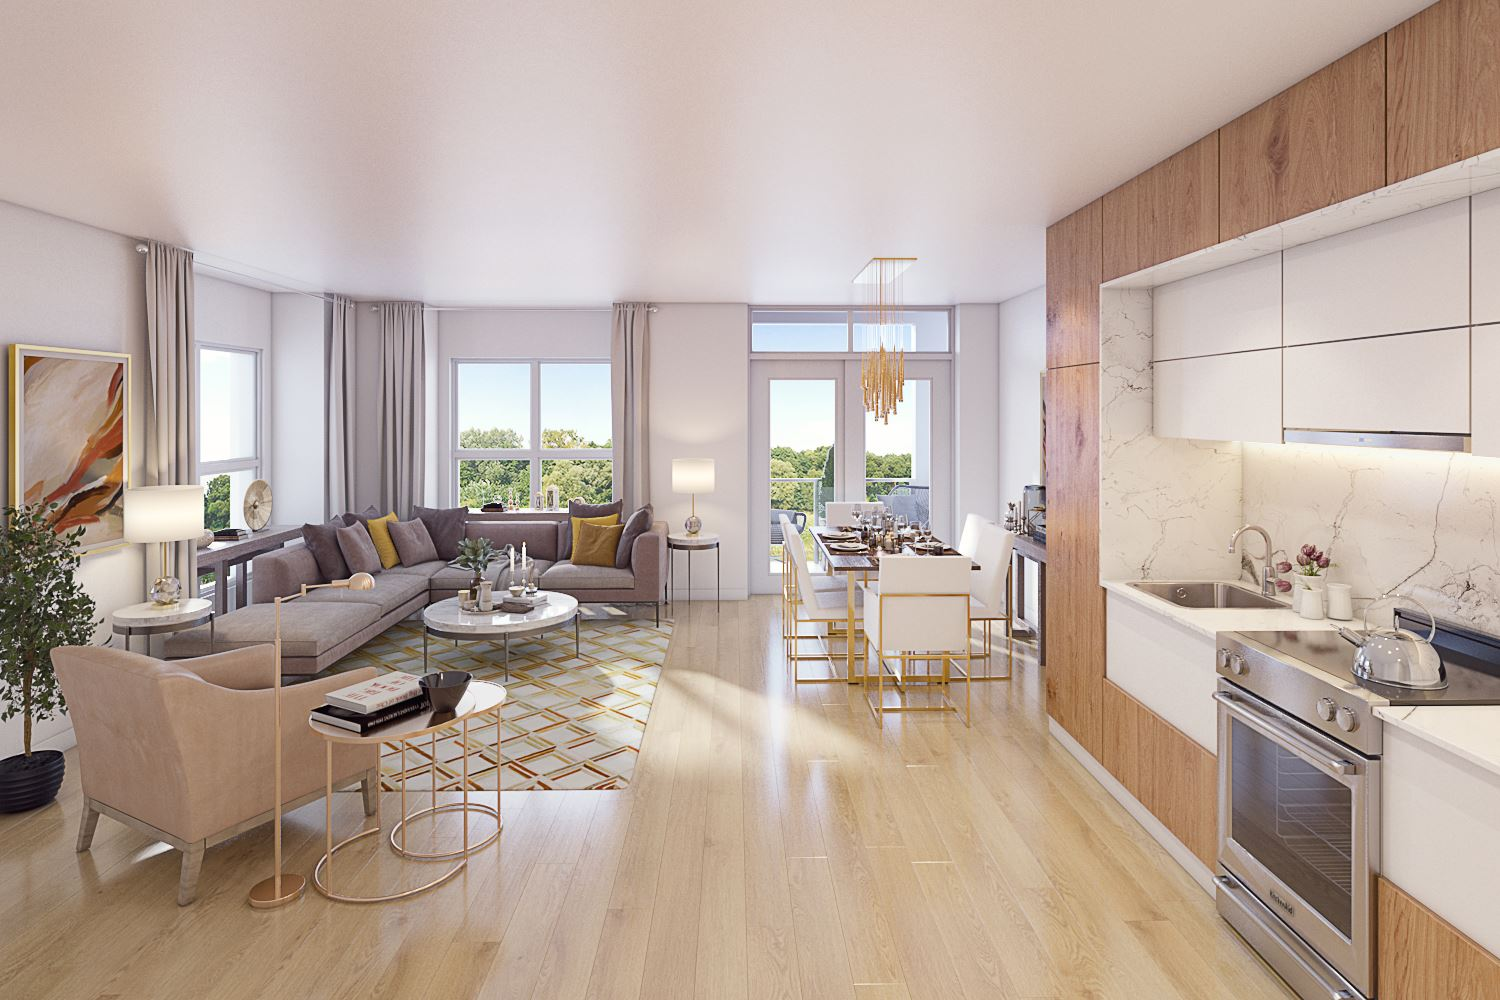 Rendering of the Harrington Residences suite interior open-concept kitchen and living room.